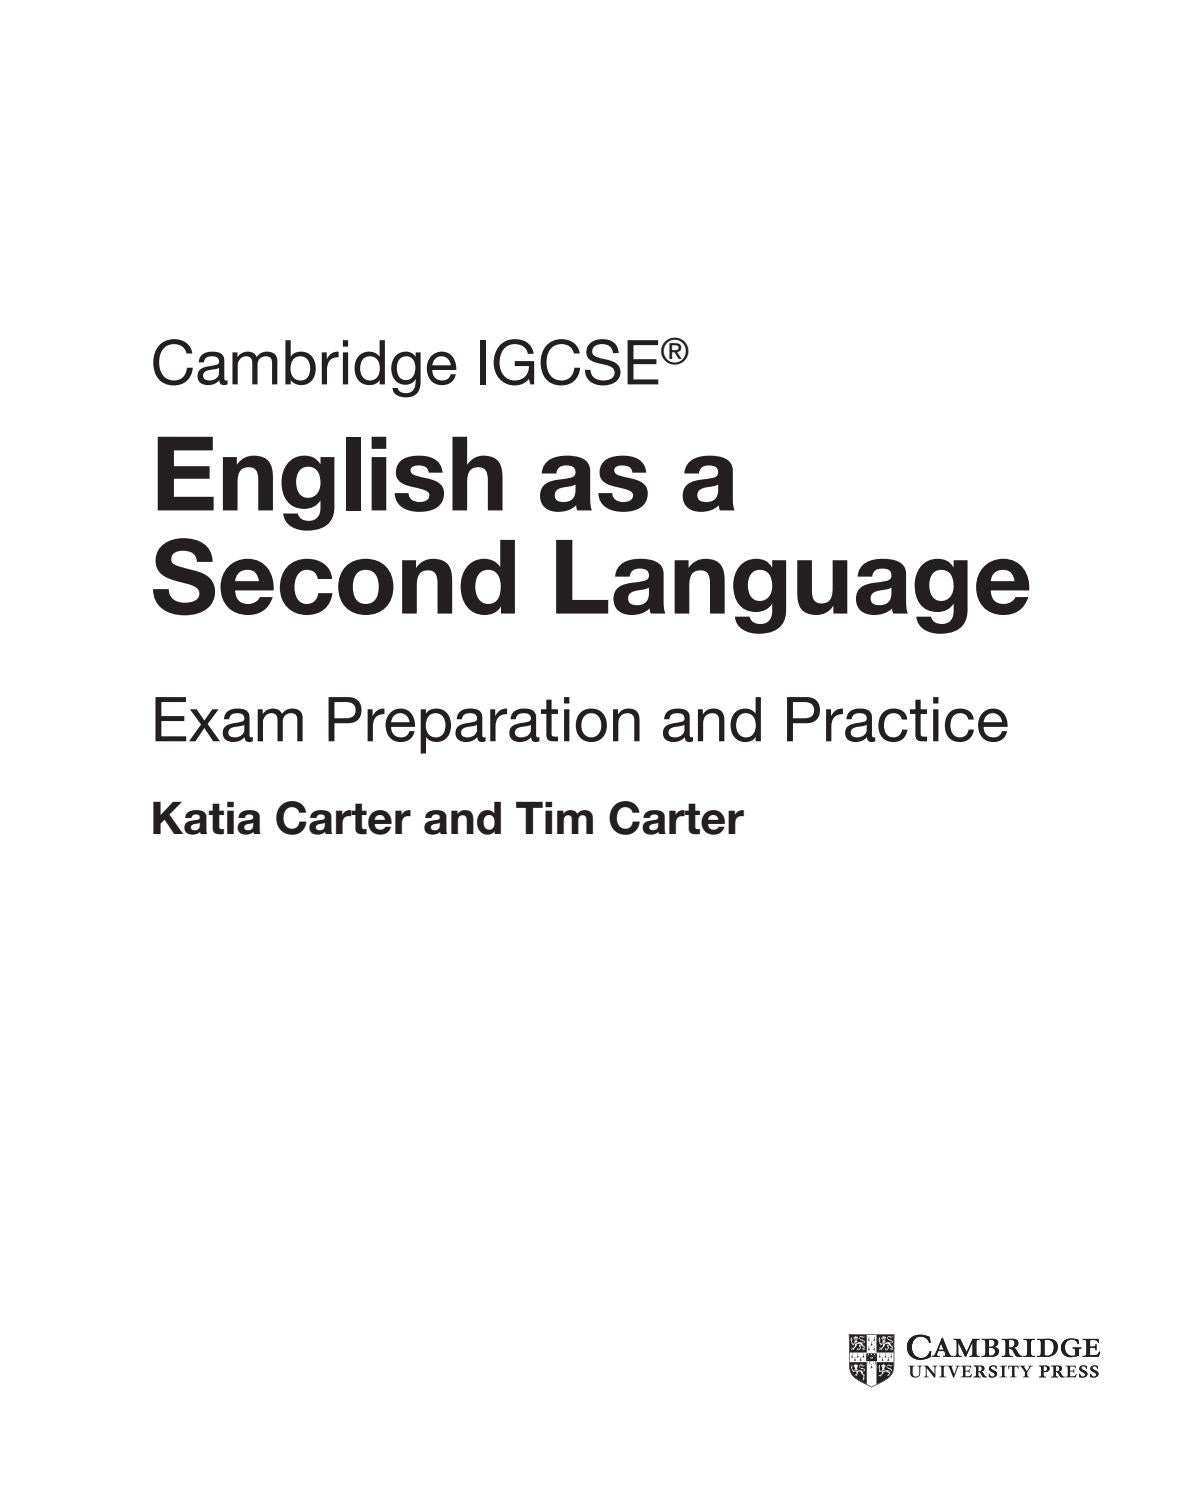 - Preview Cambridge IGCSE® English As A Second Language Exam